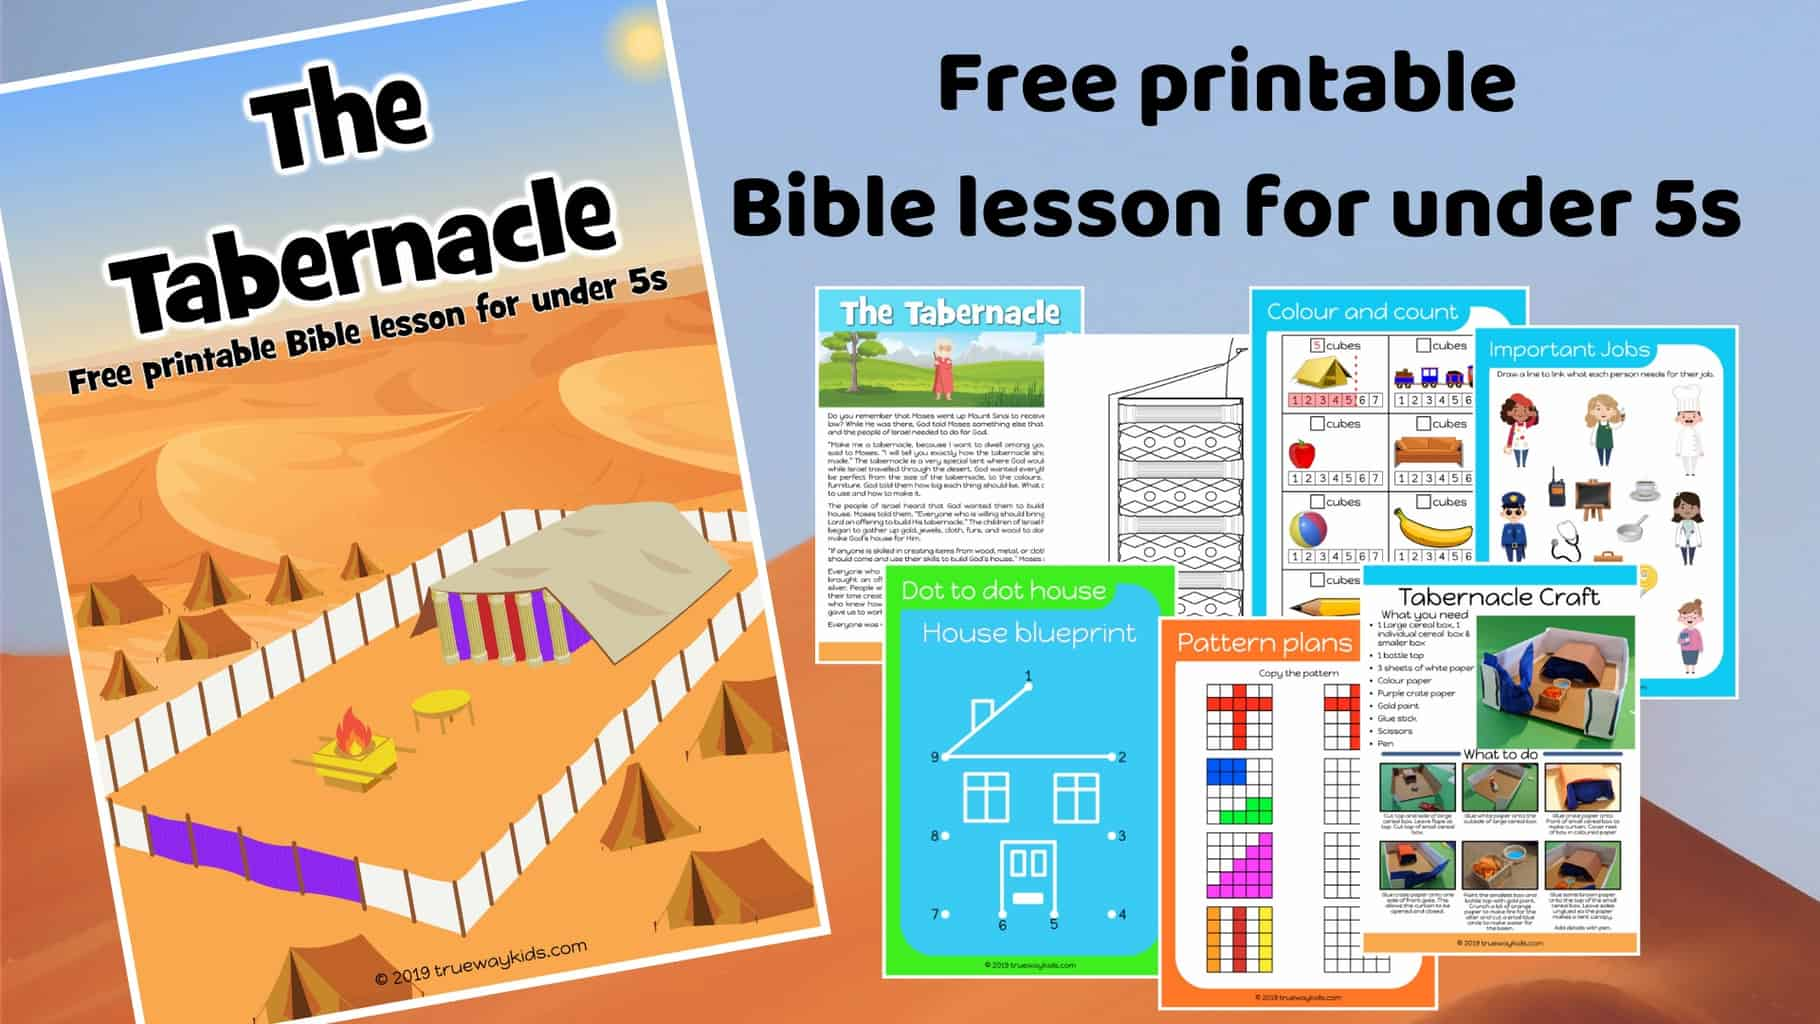 The tabernacle lesson download - Free Bible lesson for under